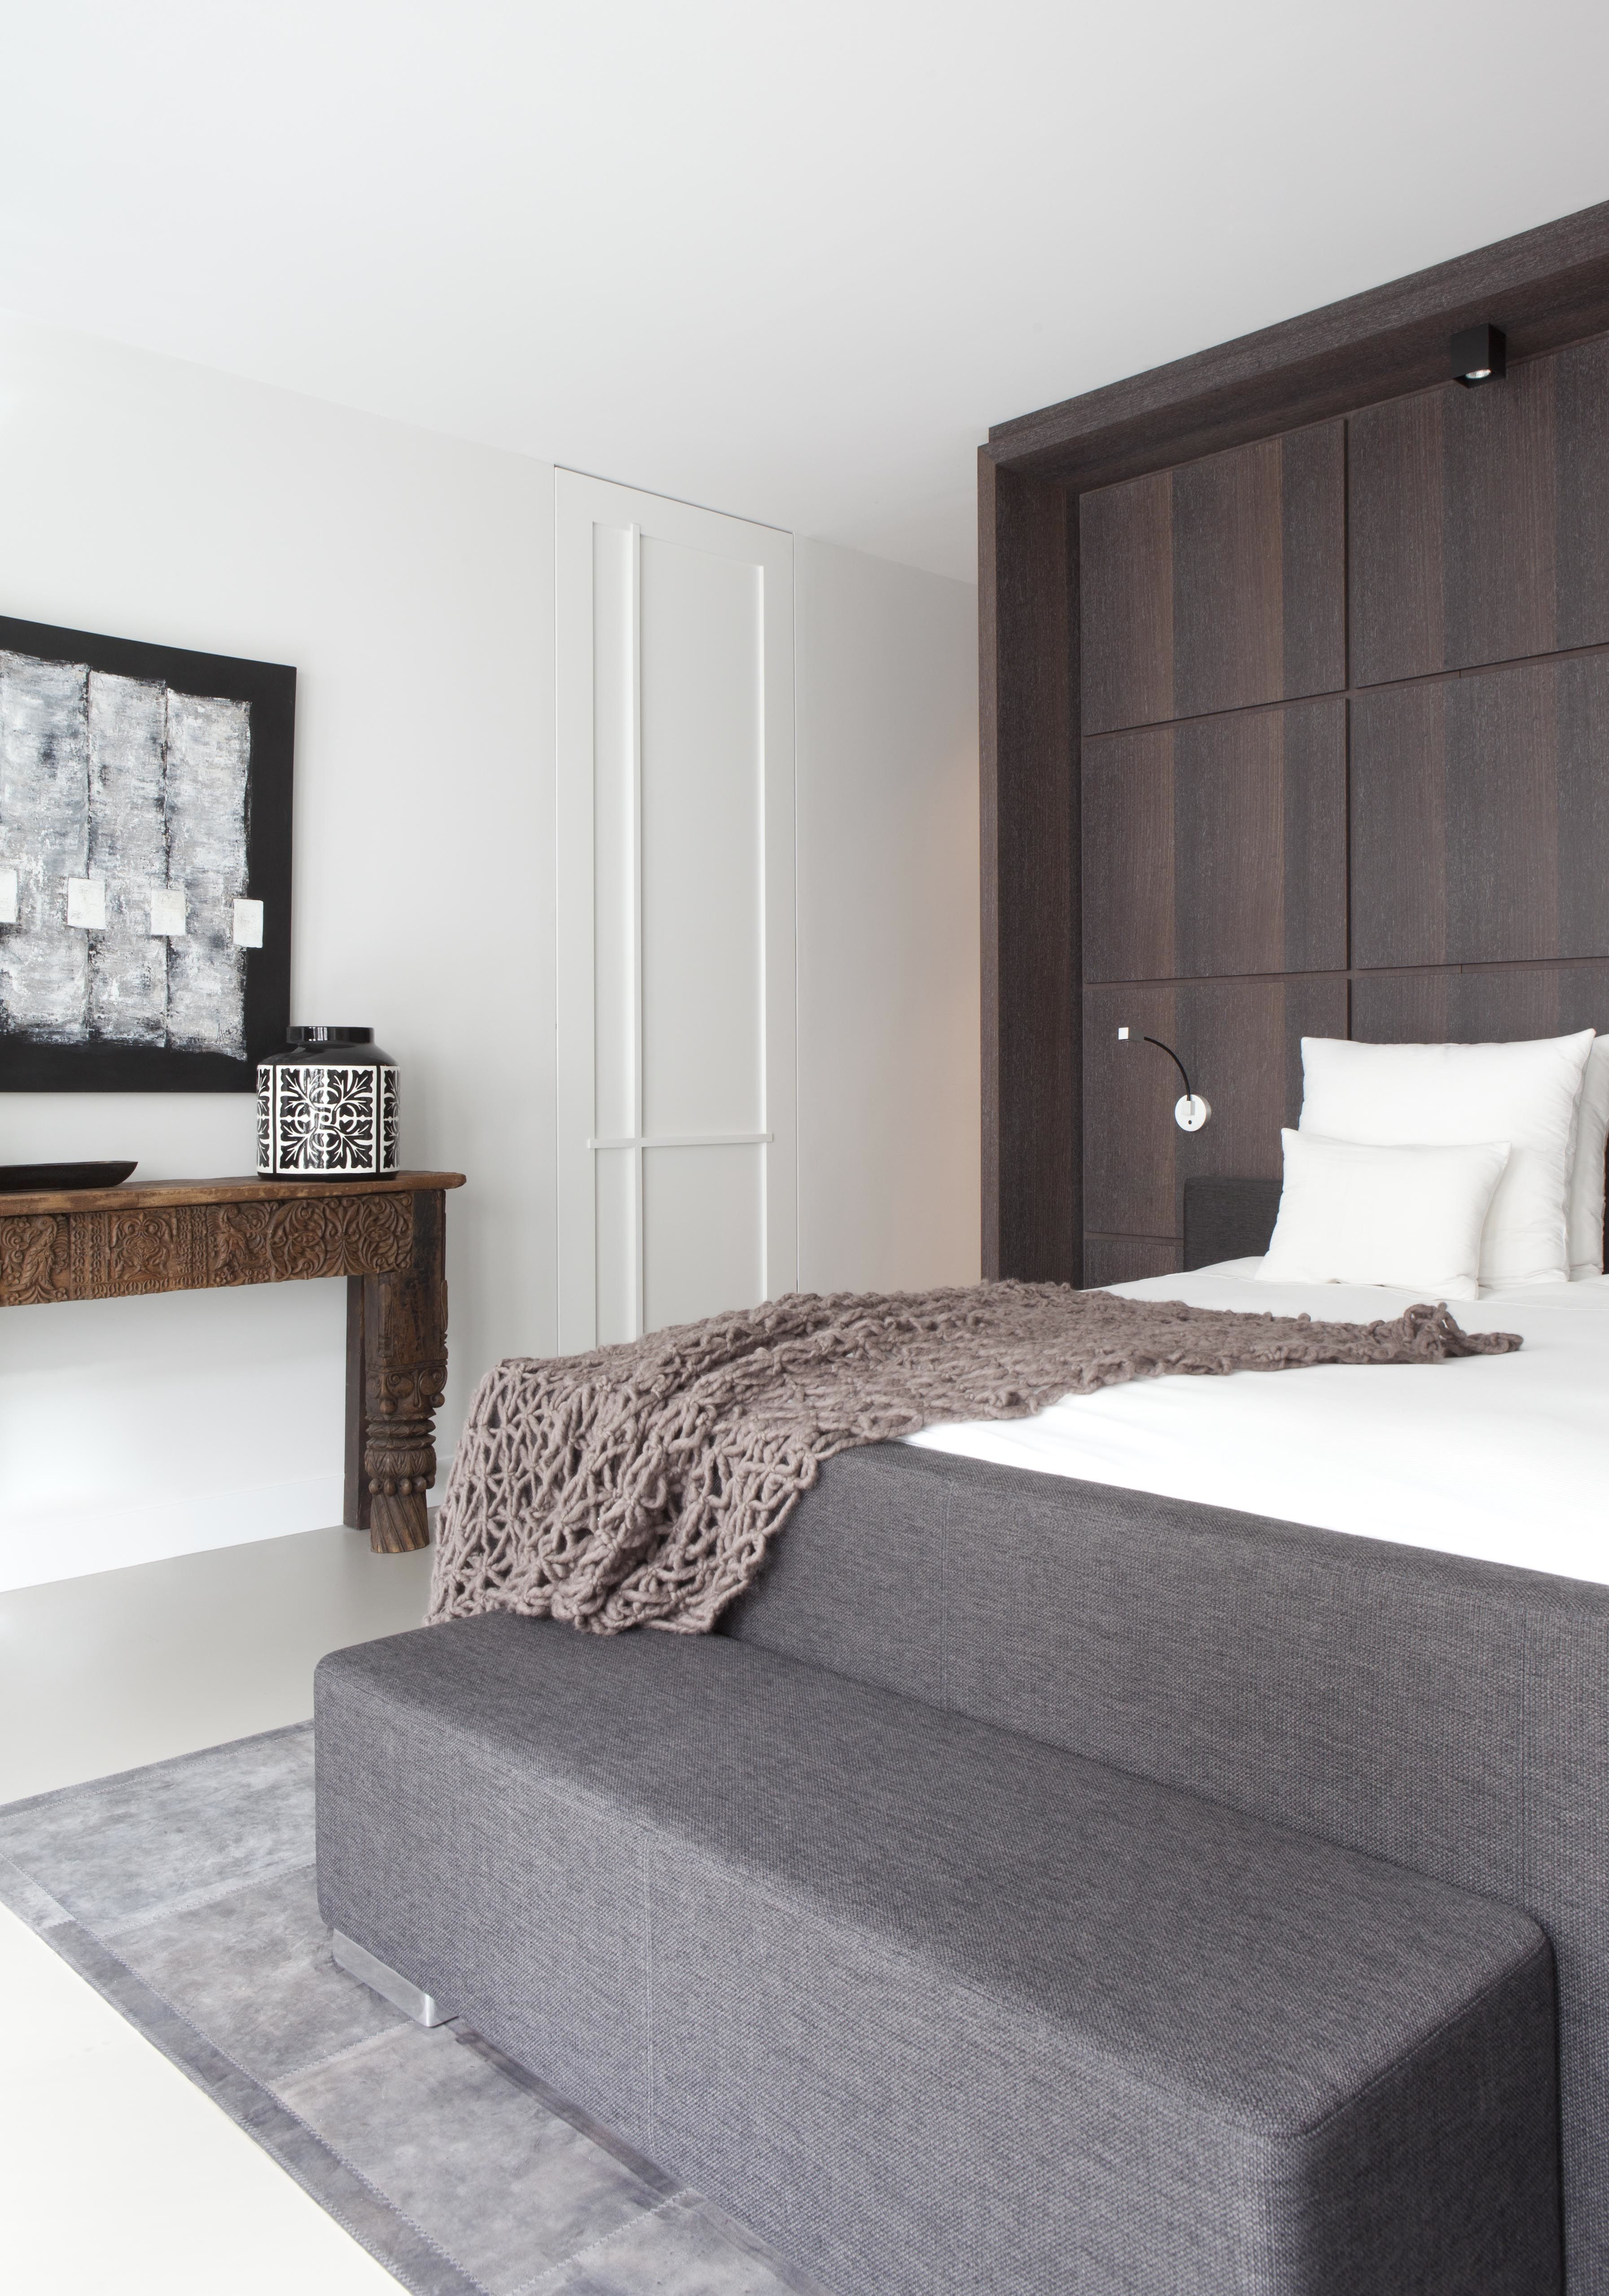 Penthouse Amsterdam master bedroom design Remy Meijers